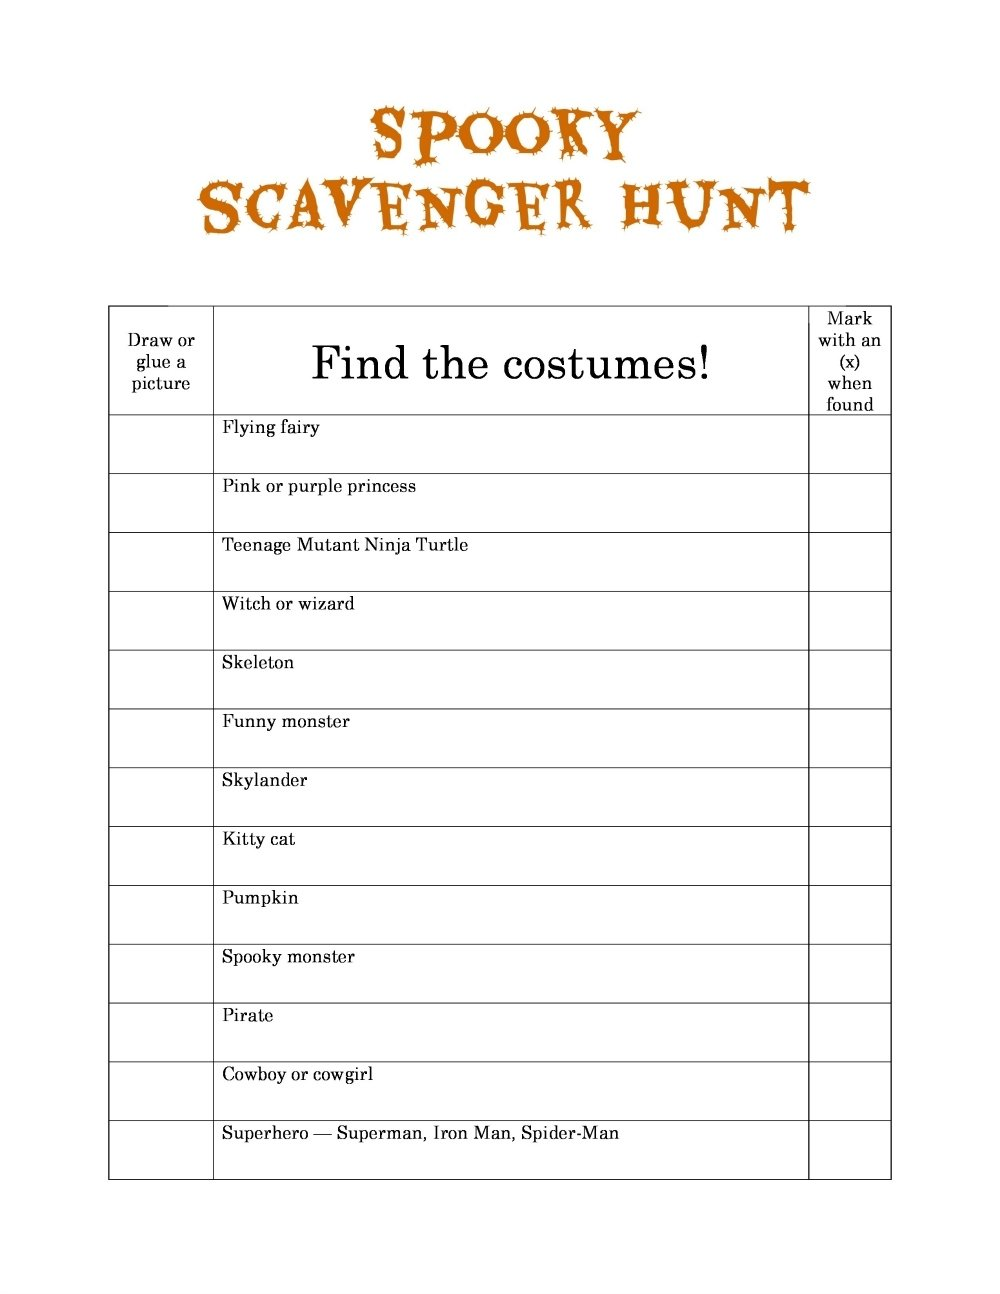 10 Lovable Scavenger Hunt Ideas For Adults Around Town spooky scavenger hunts 2021